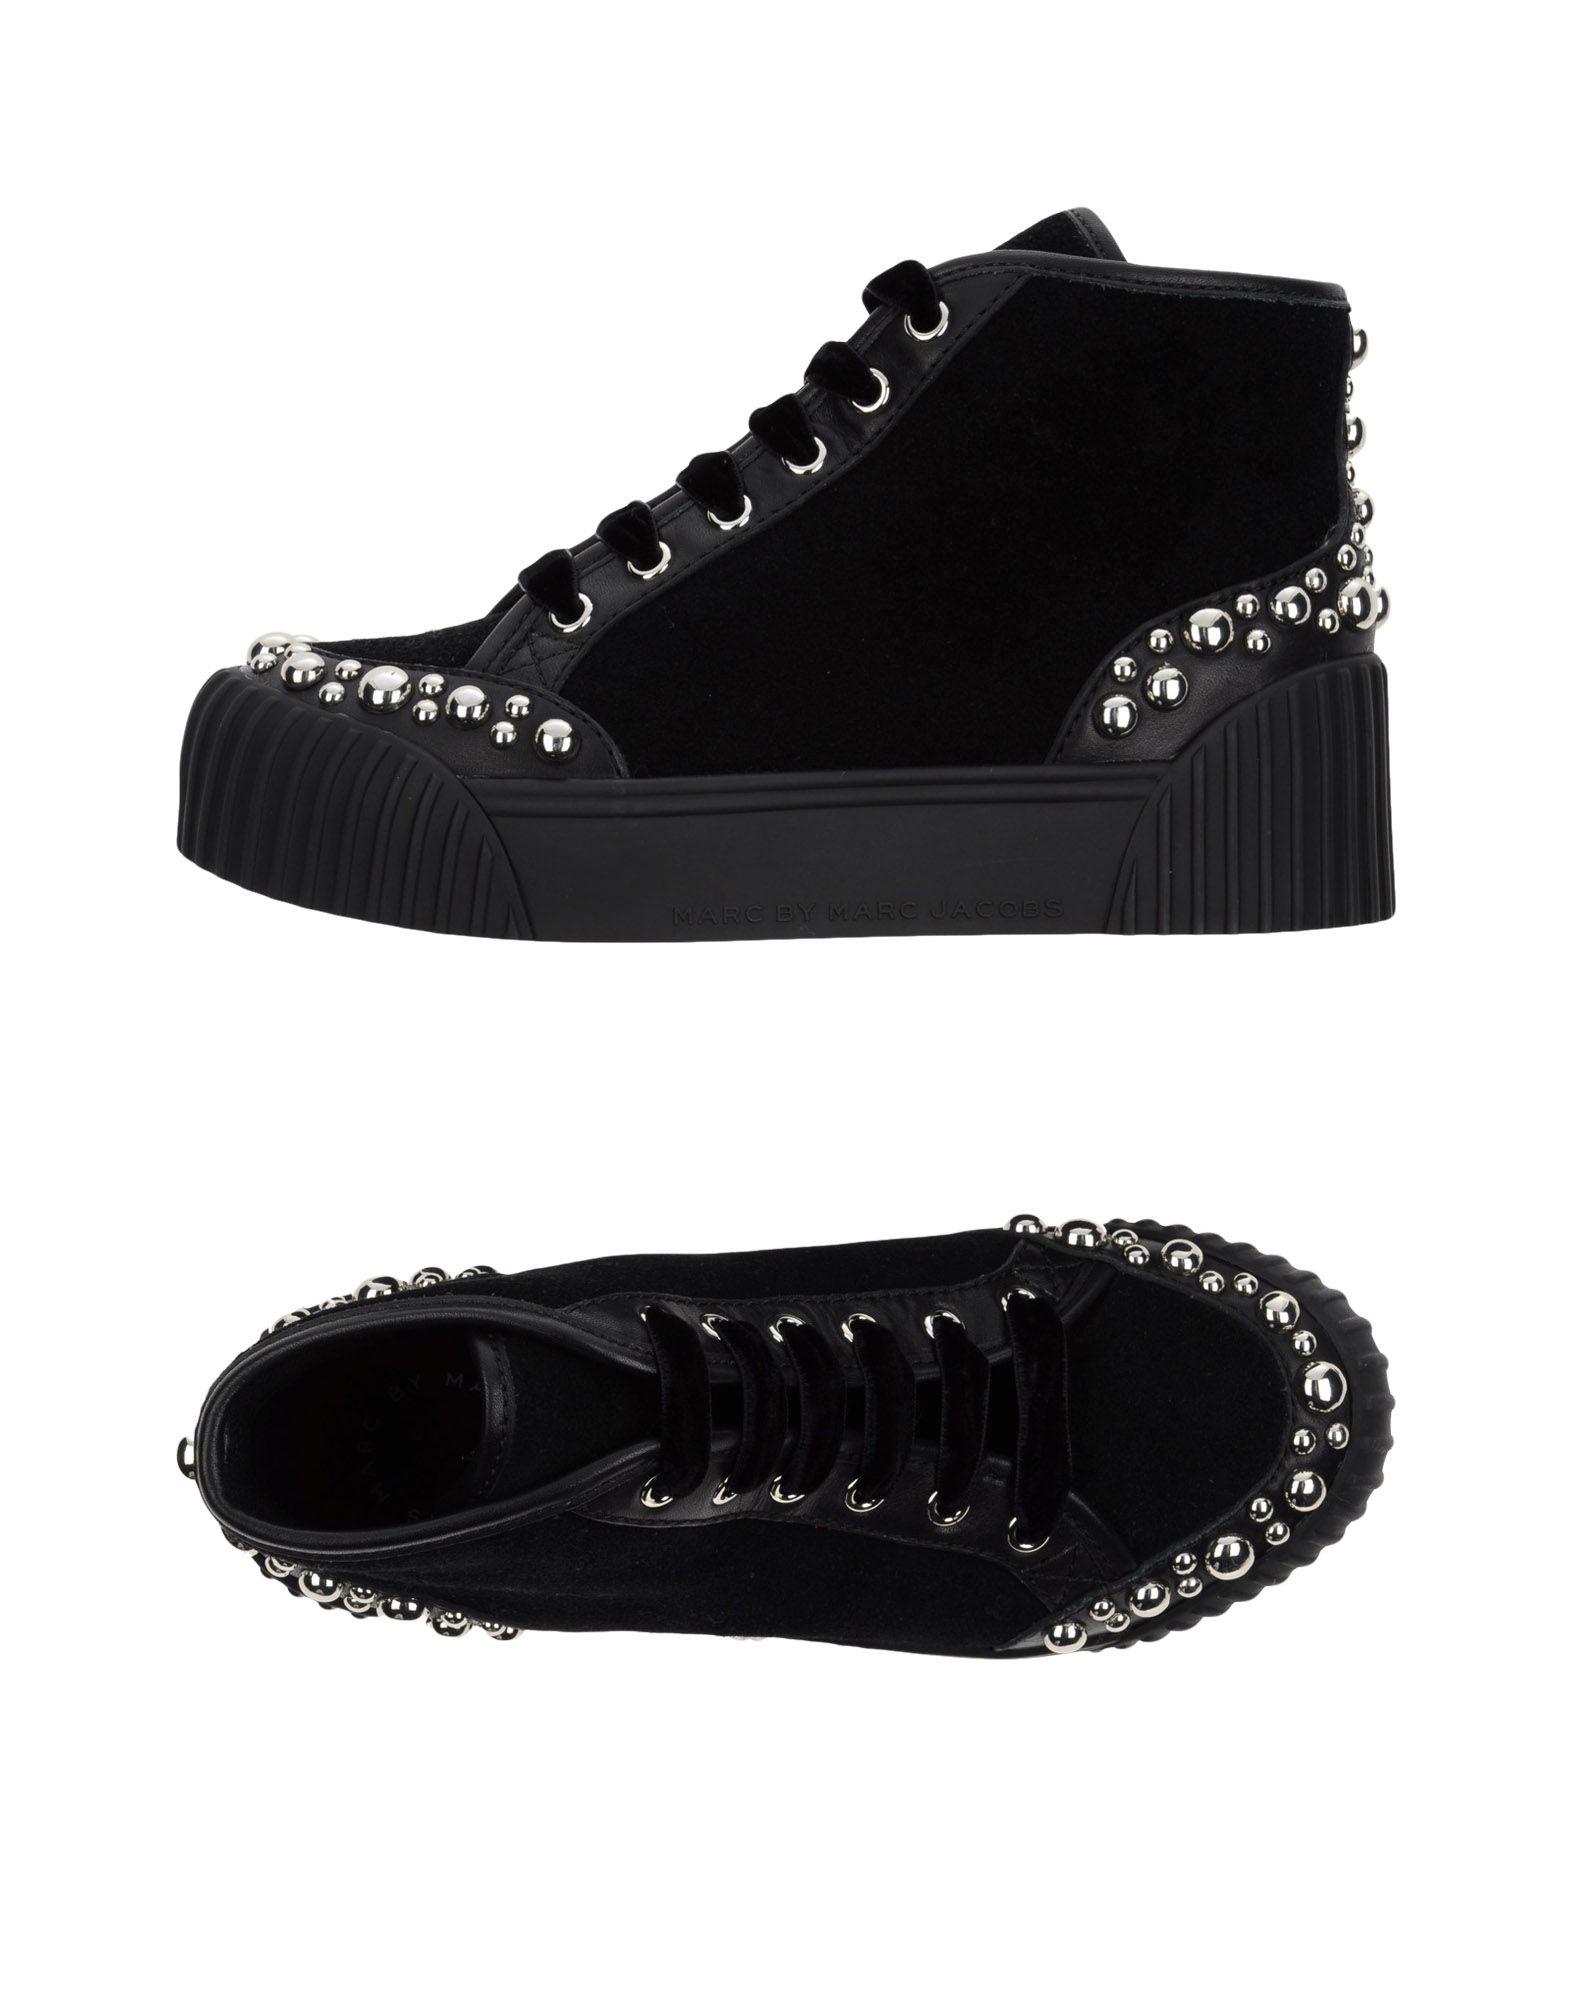 Marc By Marc Jacobs Sneakers - Women Marc By on Marc Jacobs Sneakers online on By  Australia - 11351256AK b06f1a